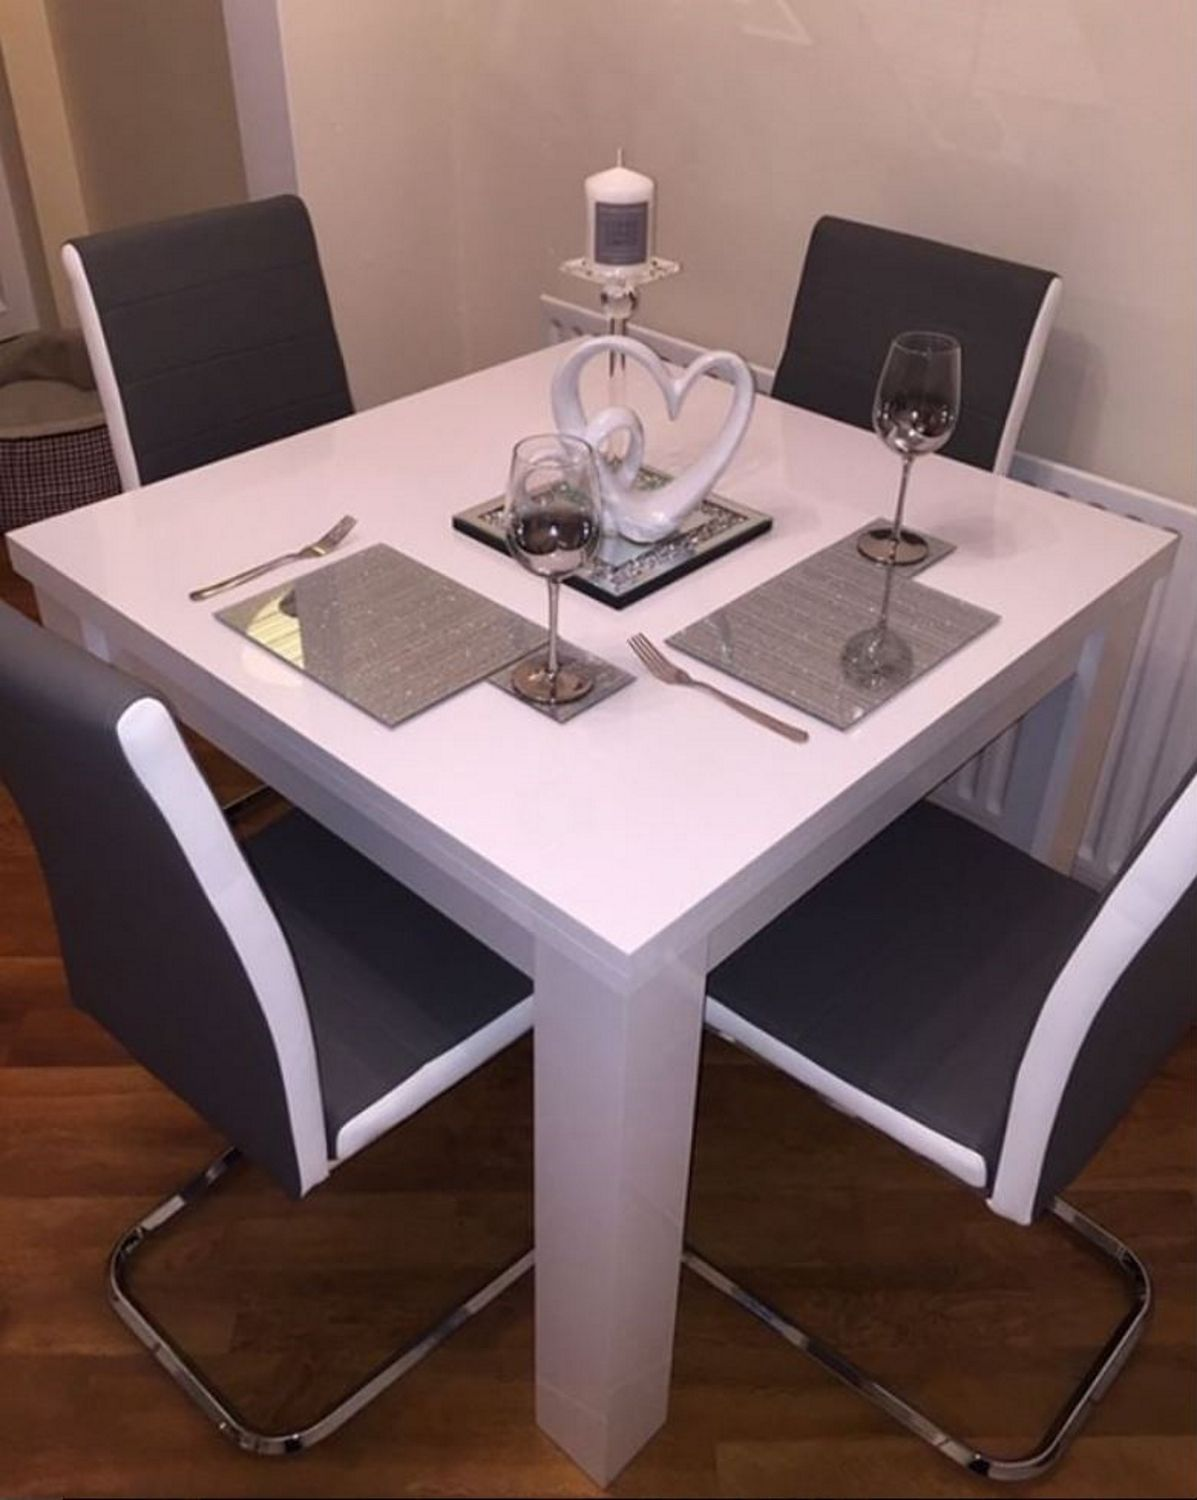 White High Gloss Flip Top Dining Table - Extending  4 seater